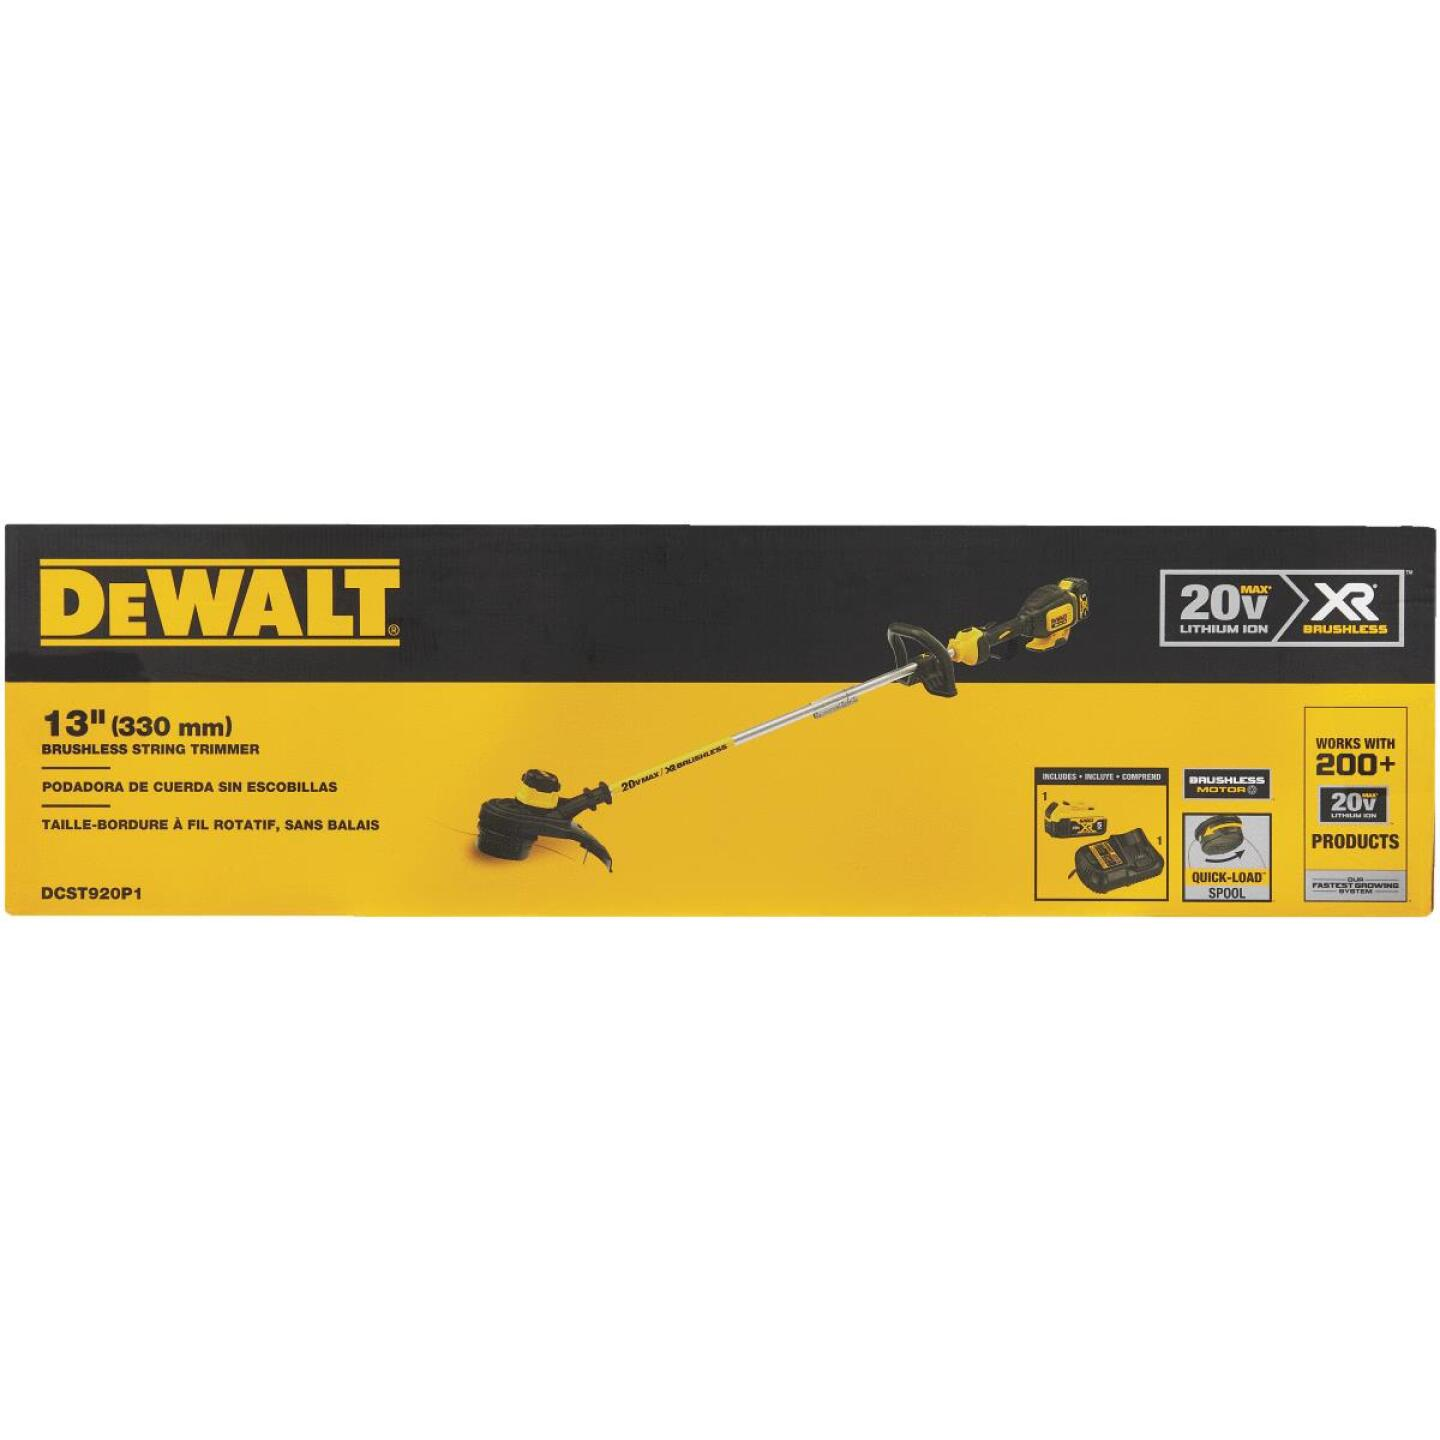 DeWalt 20V MAX 13 In. Lithium Ion Straight Cordless String Trimmer Image 6